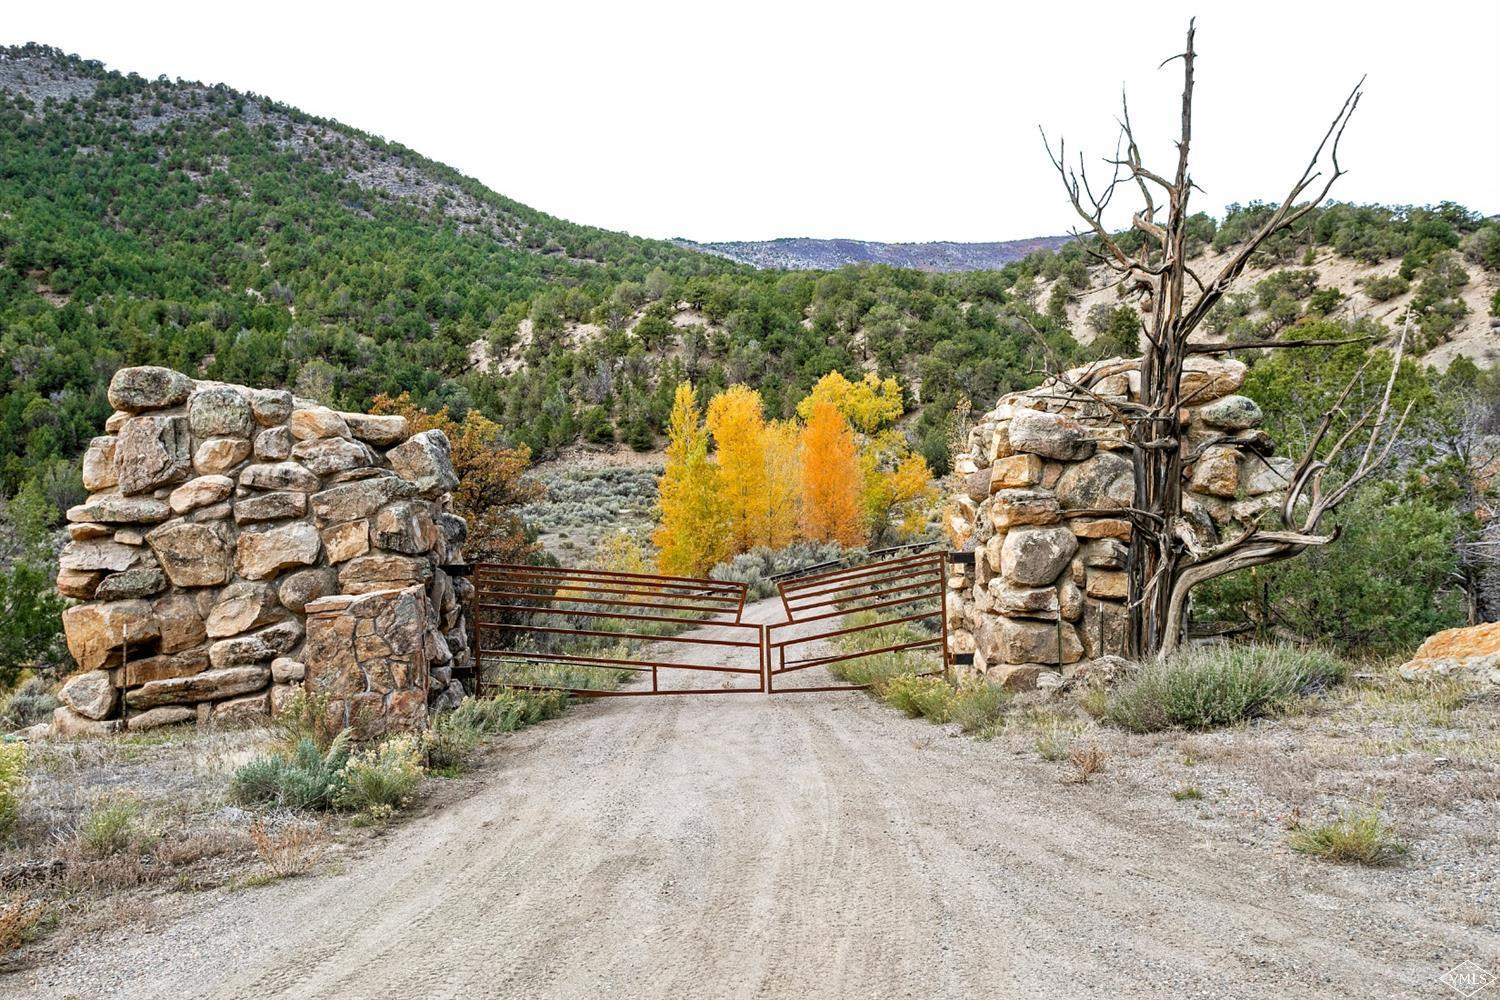 2742 Sweetwater Road, 4, Gypsum, CO 81637 Property Photo - Gypsum, CO real estate listing